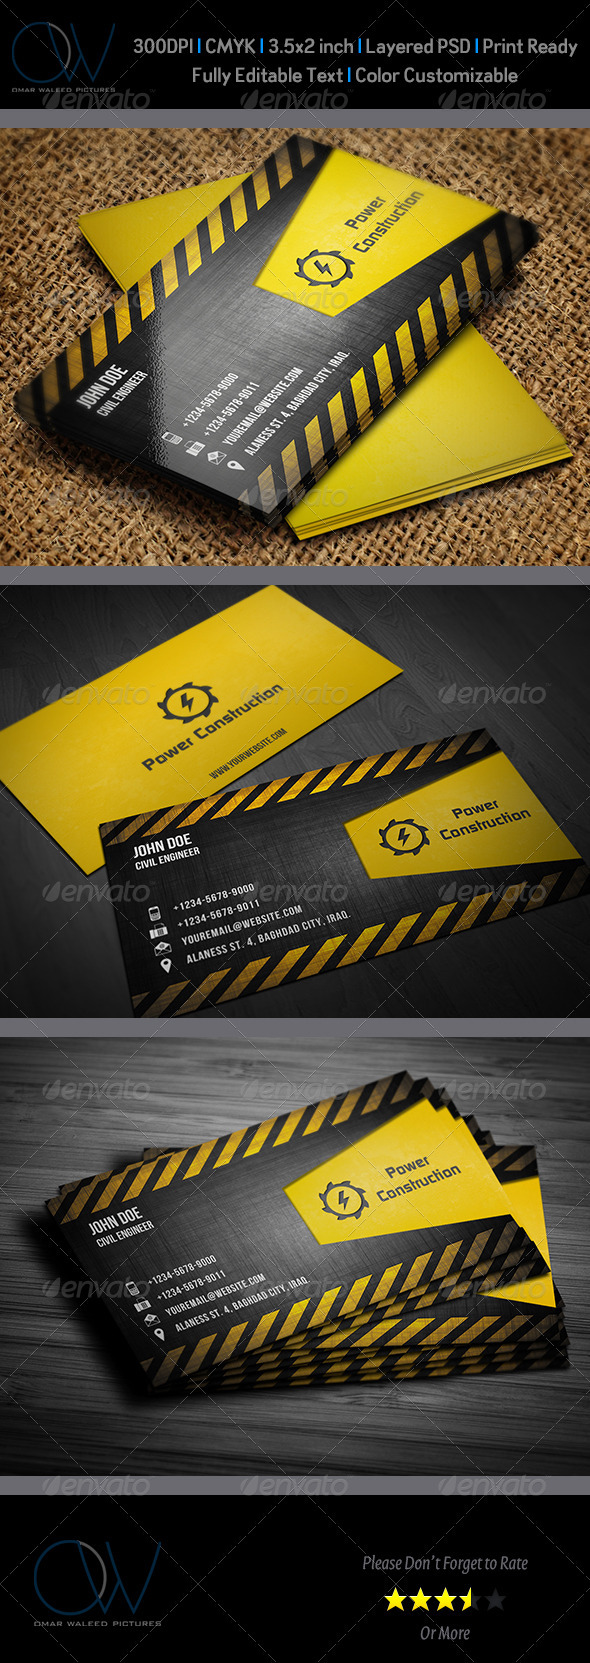 Construction Business Card GraphicRiver